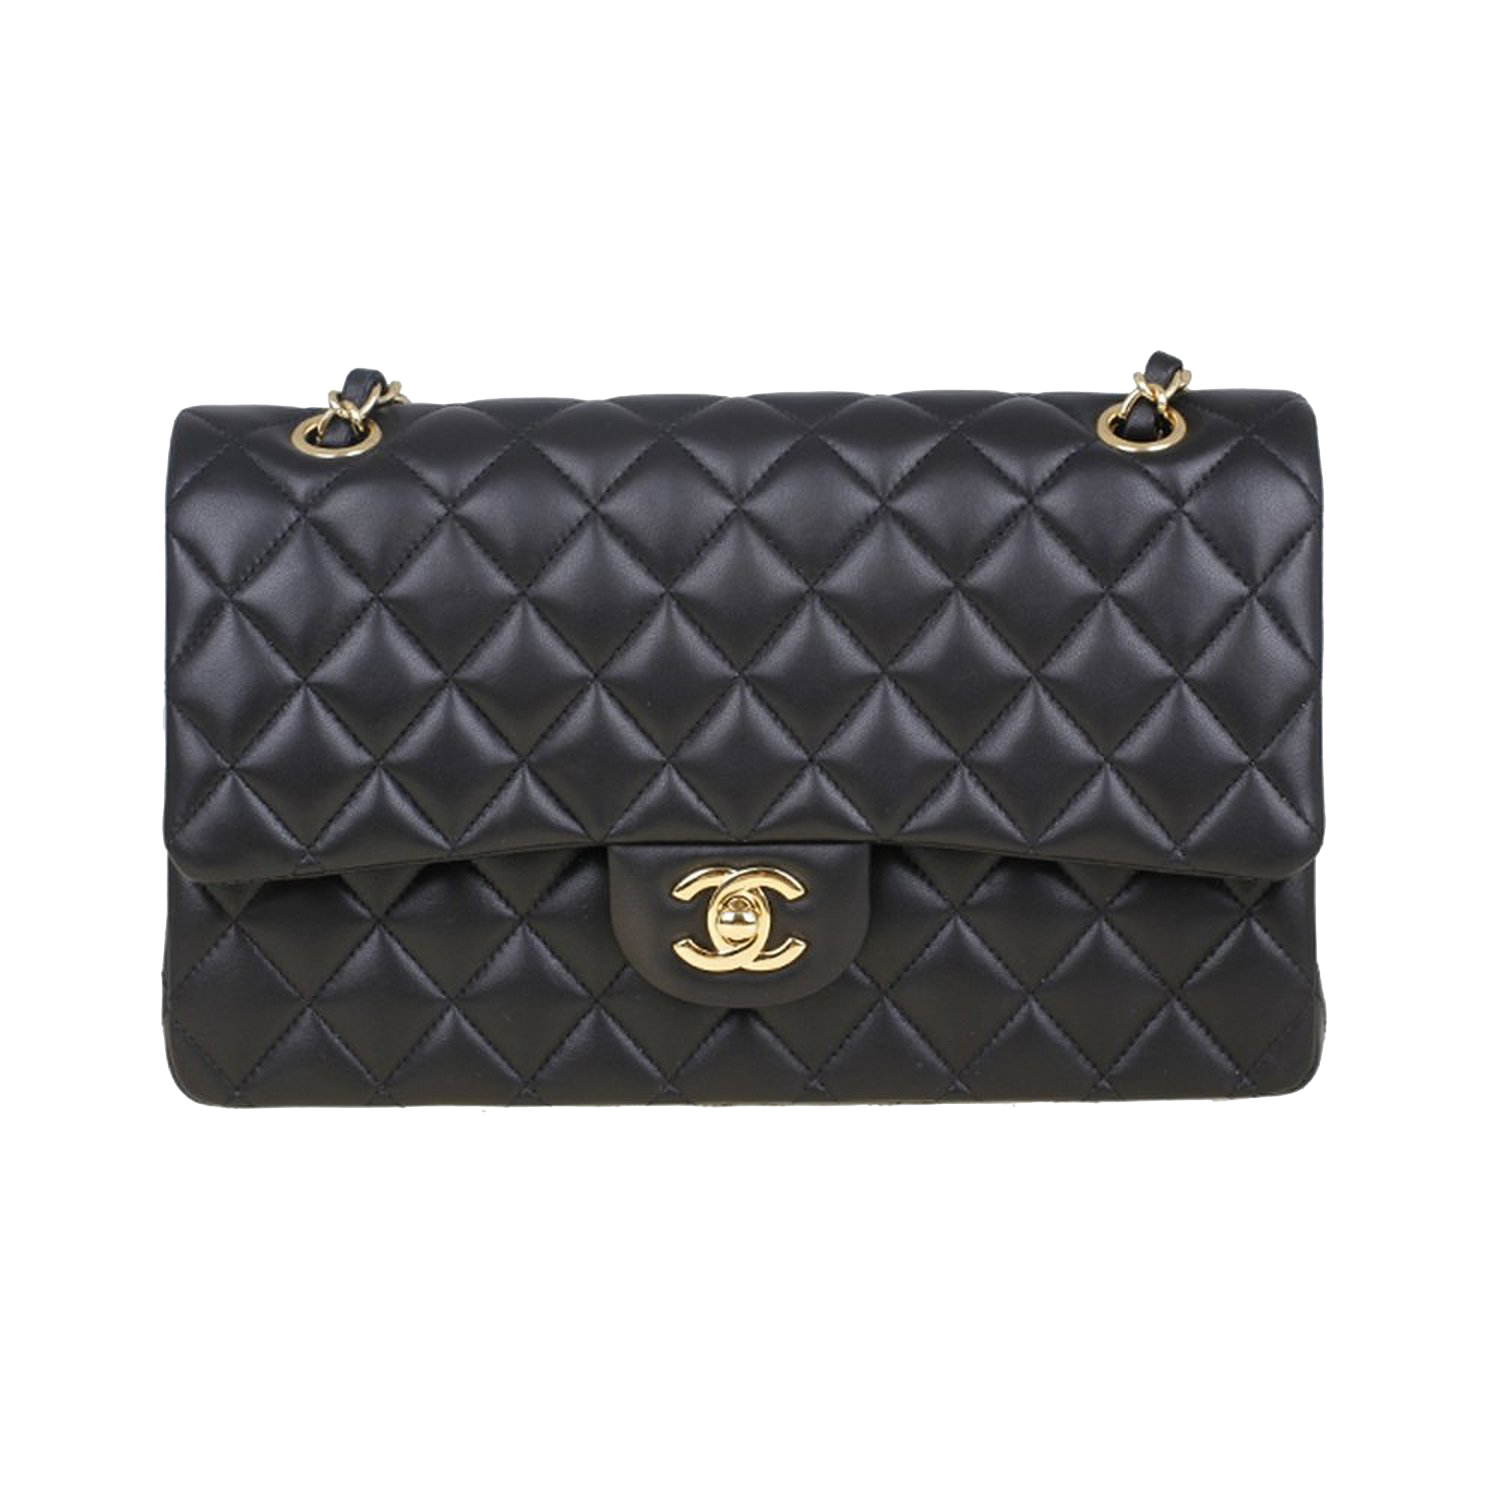 Fashion Bag Moschino Black Handbag Lingge Chanel PNG Image